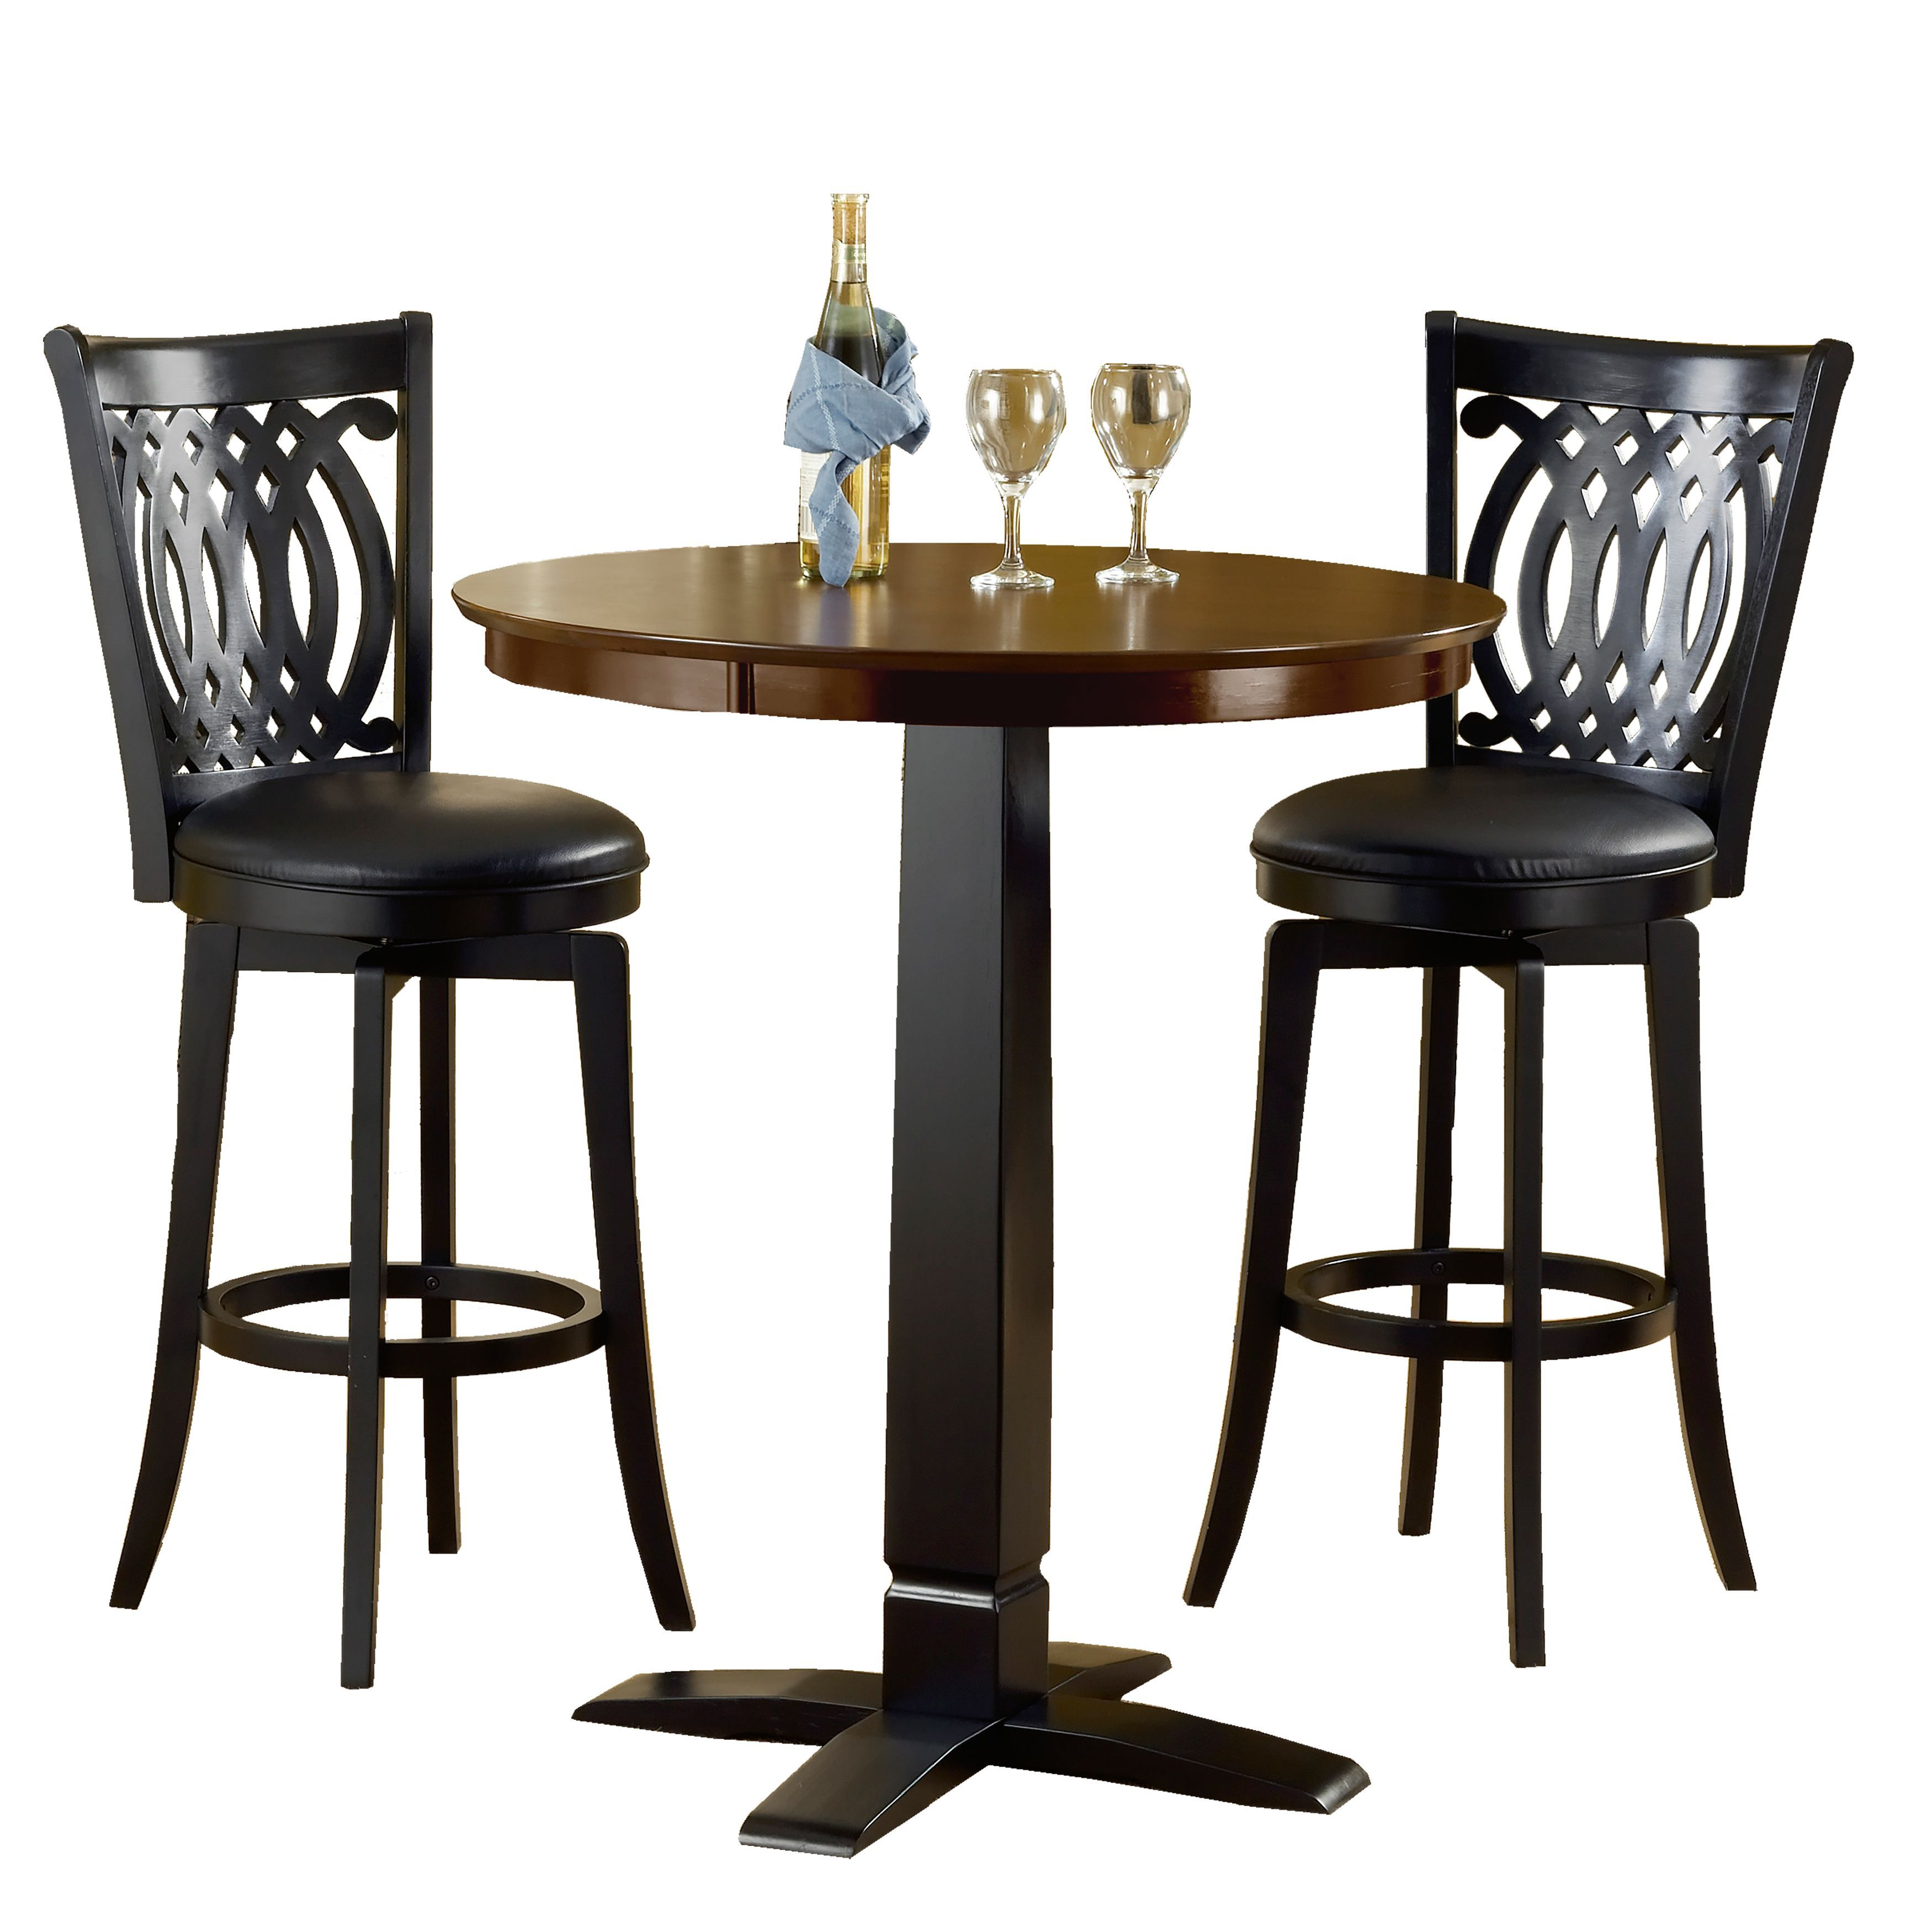 point seating leaves info butterfly oval good kitchen with sale extension bench extensions pedestal cypress size buy small full top dining two large and tables home chairs white black glass table oak clubtexas sets room round leaf for set of